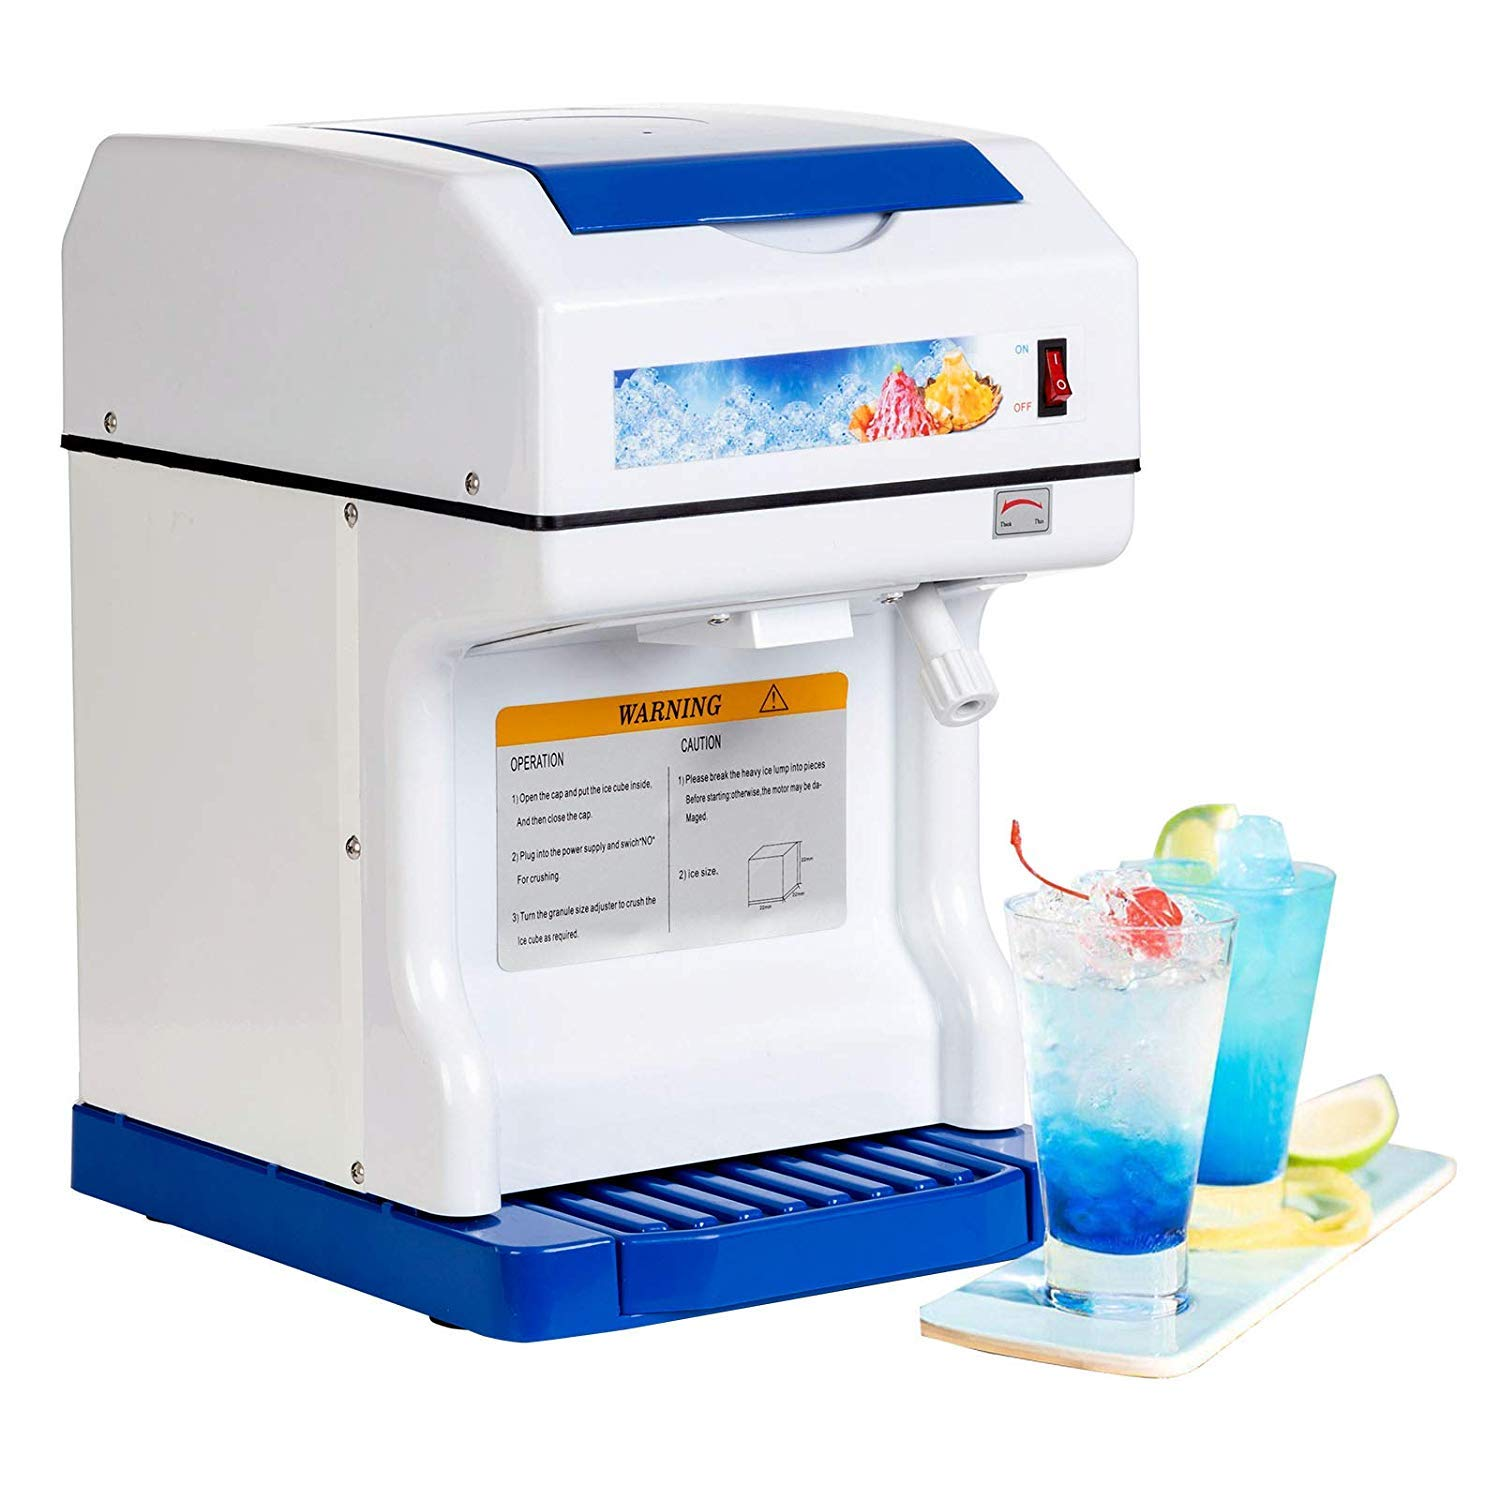 Nurxiovo Ice Shaver Machine Electric Ice Crusher Ice Shaving Machine Commercial Ice Crusher Snow Cone Maker Machine Shaved Ice Crusher, 350 r/m Perfect For Parties